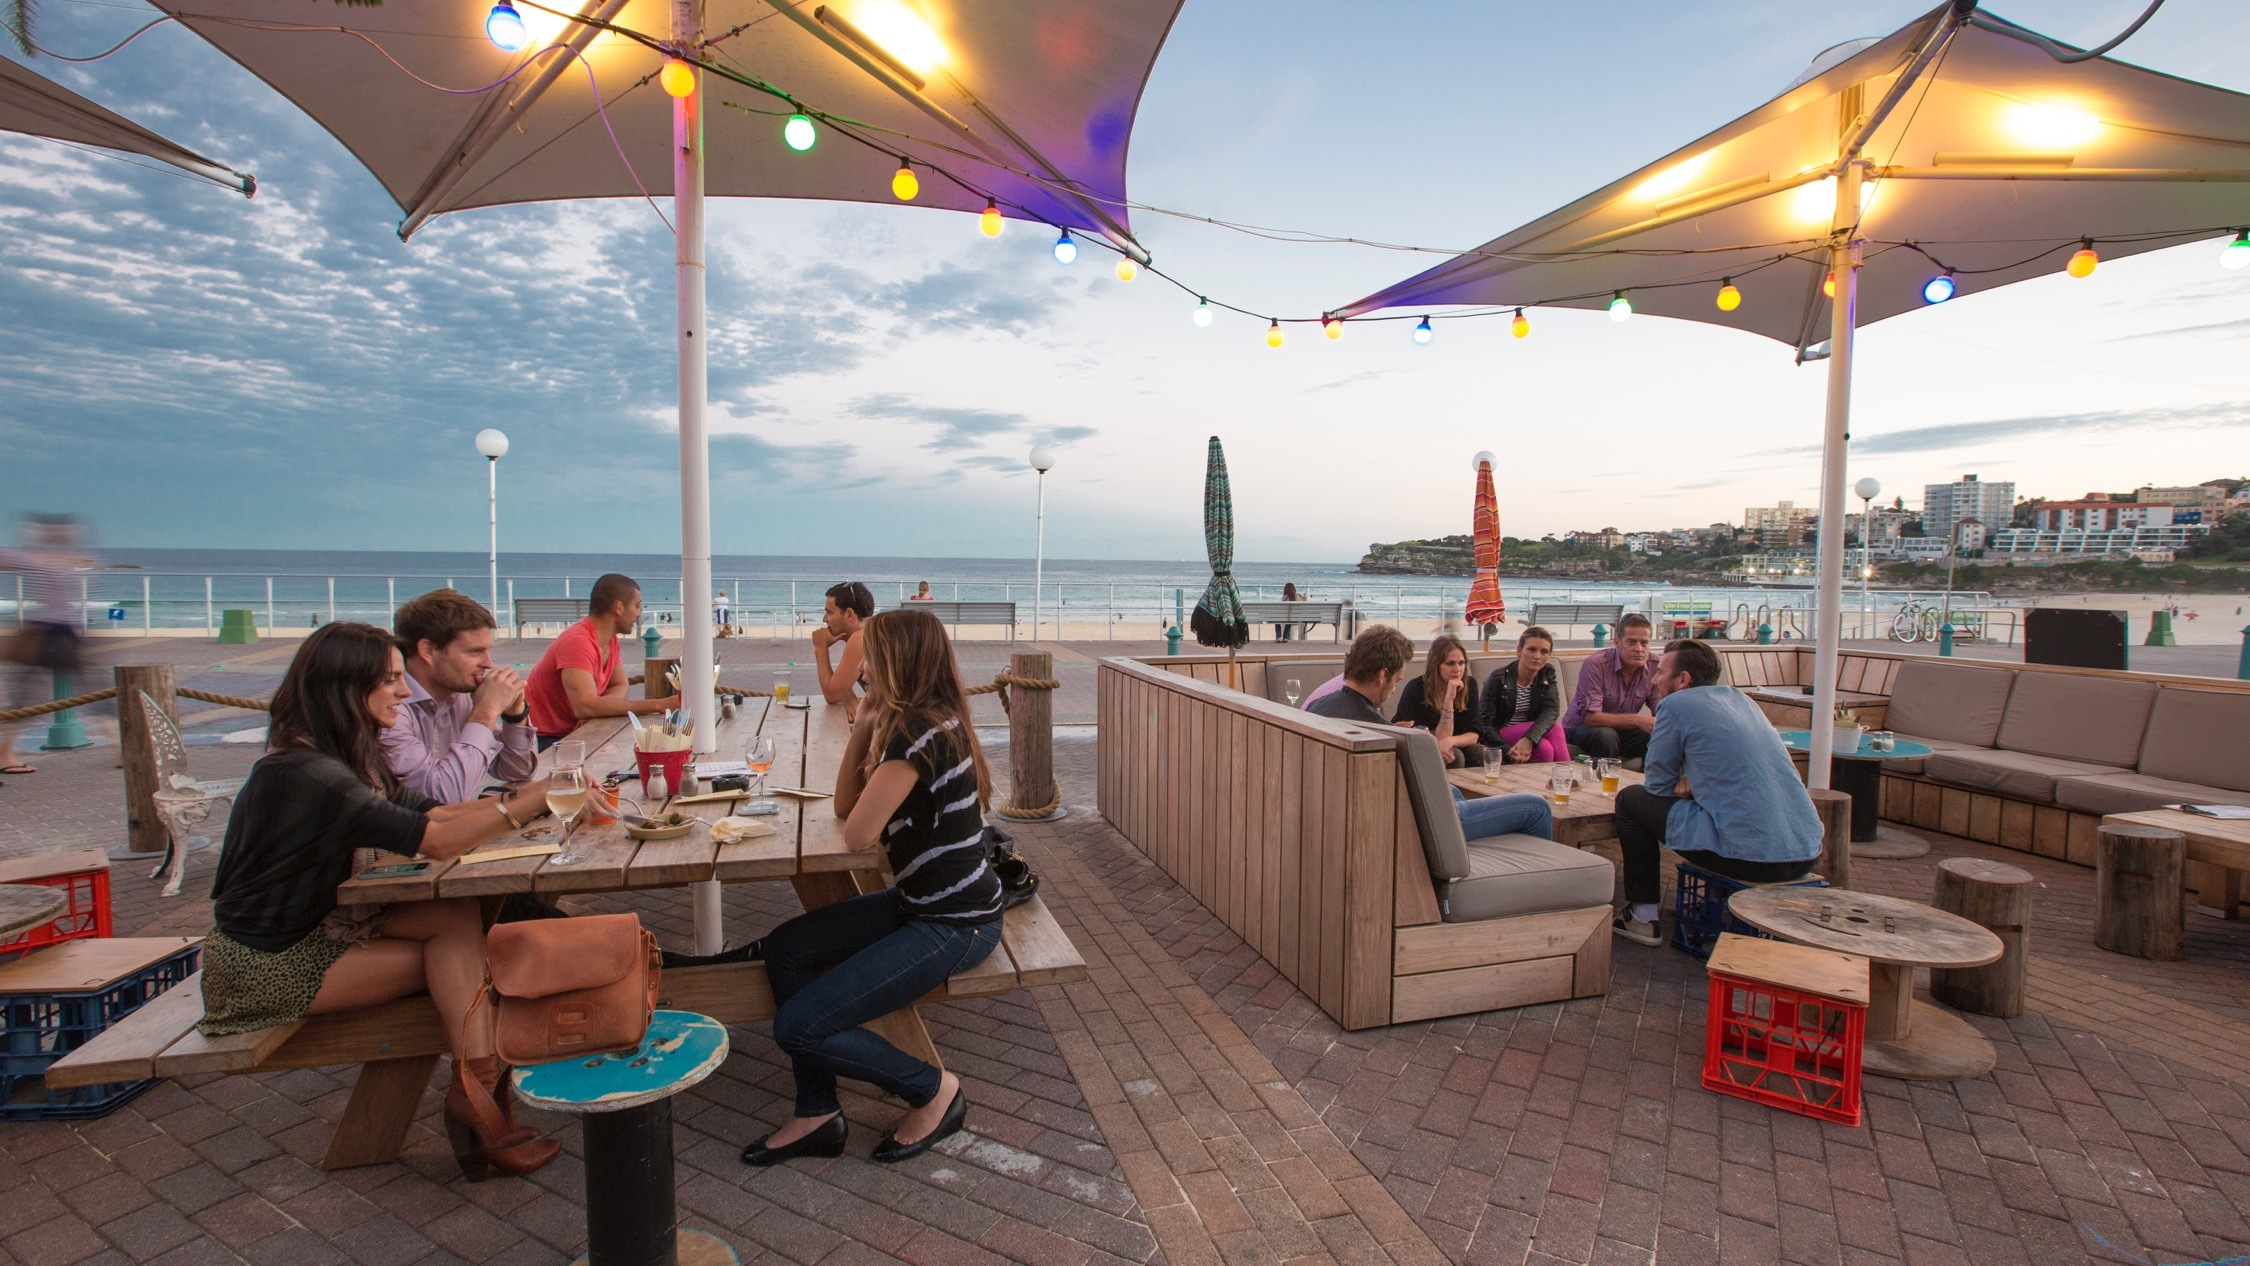 Customers sitting in the outdoor area with a view of Bondi Beach